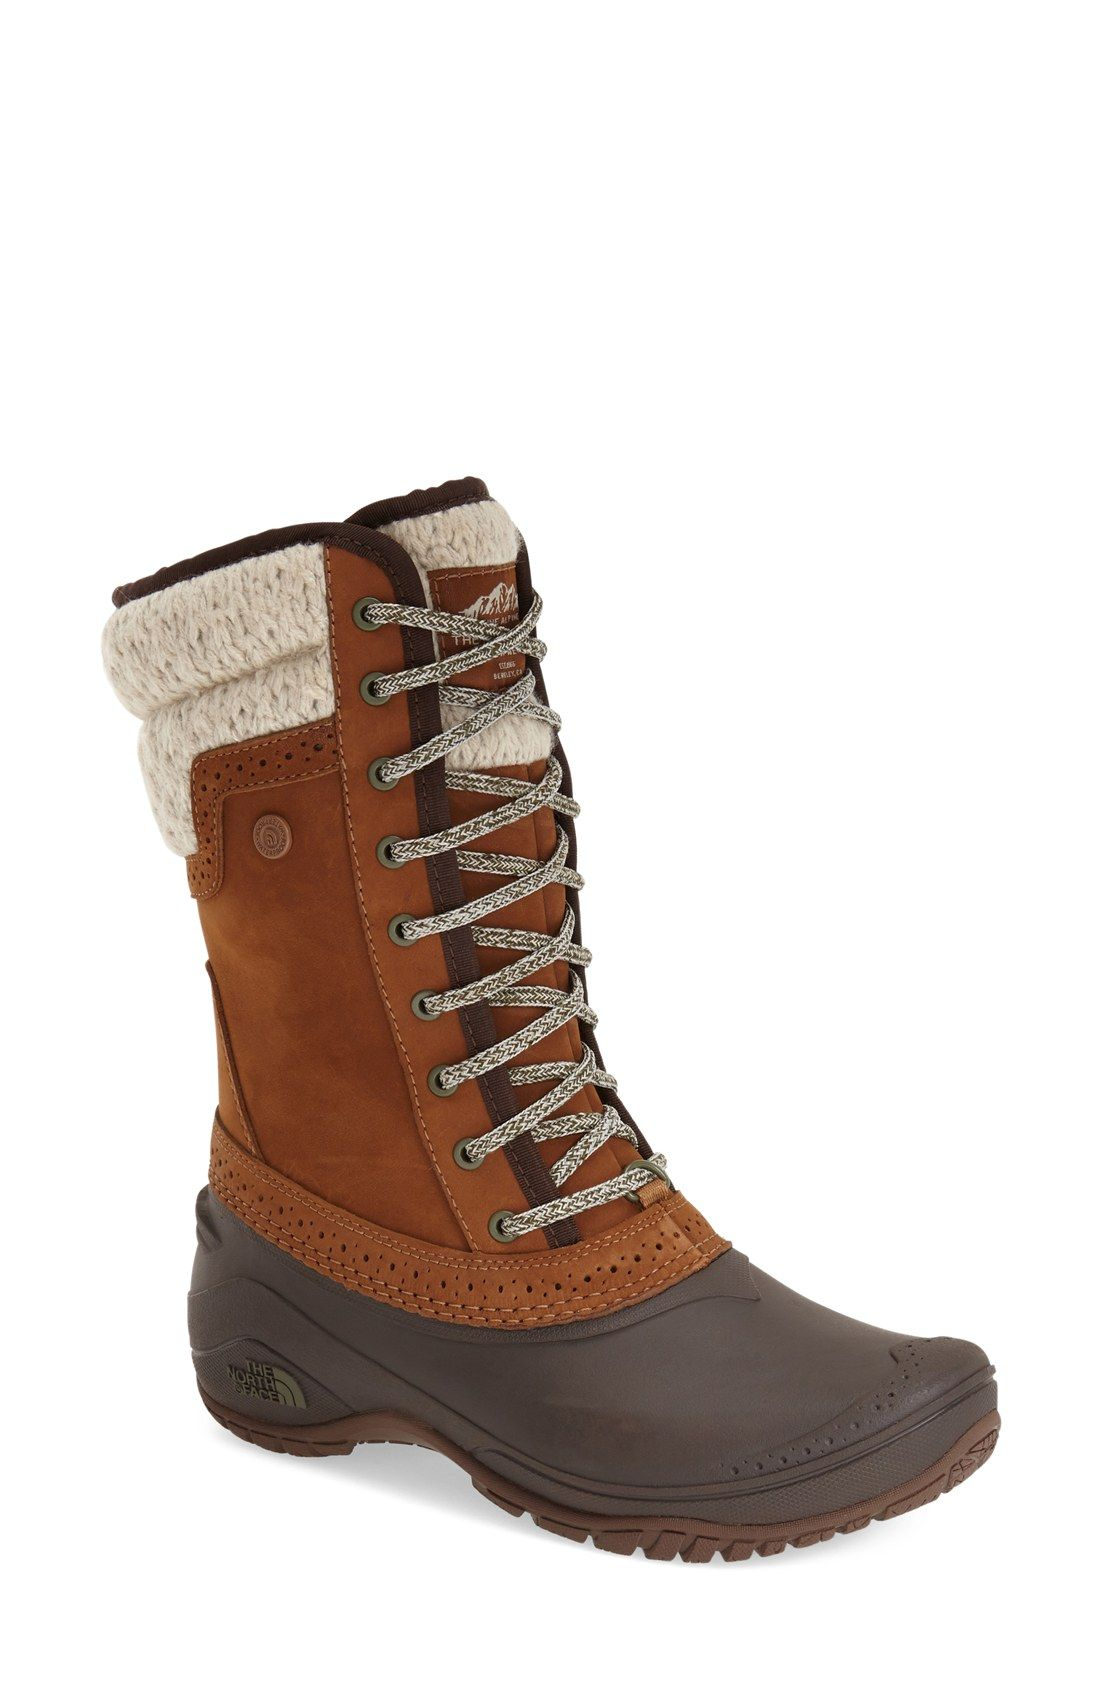 To acquire Ugg boots winter waterproof pictures trends